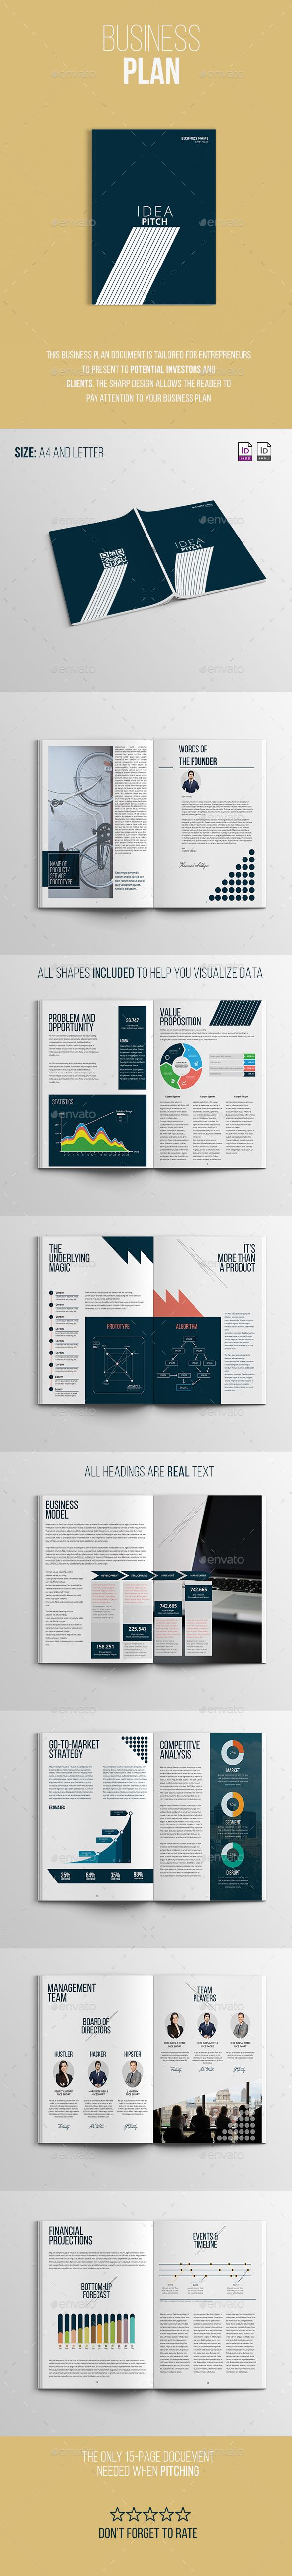 Business Plan Business Planning Business Proposal And Proposals - Business plan template indesign